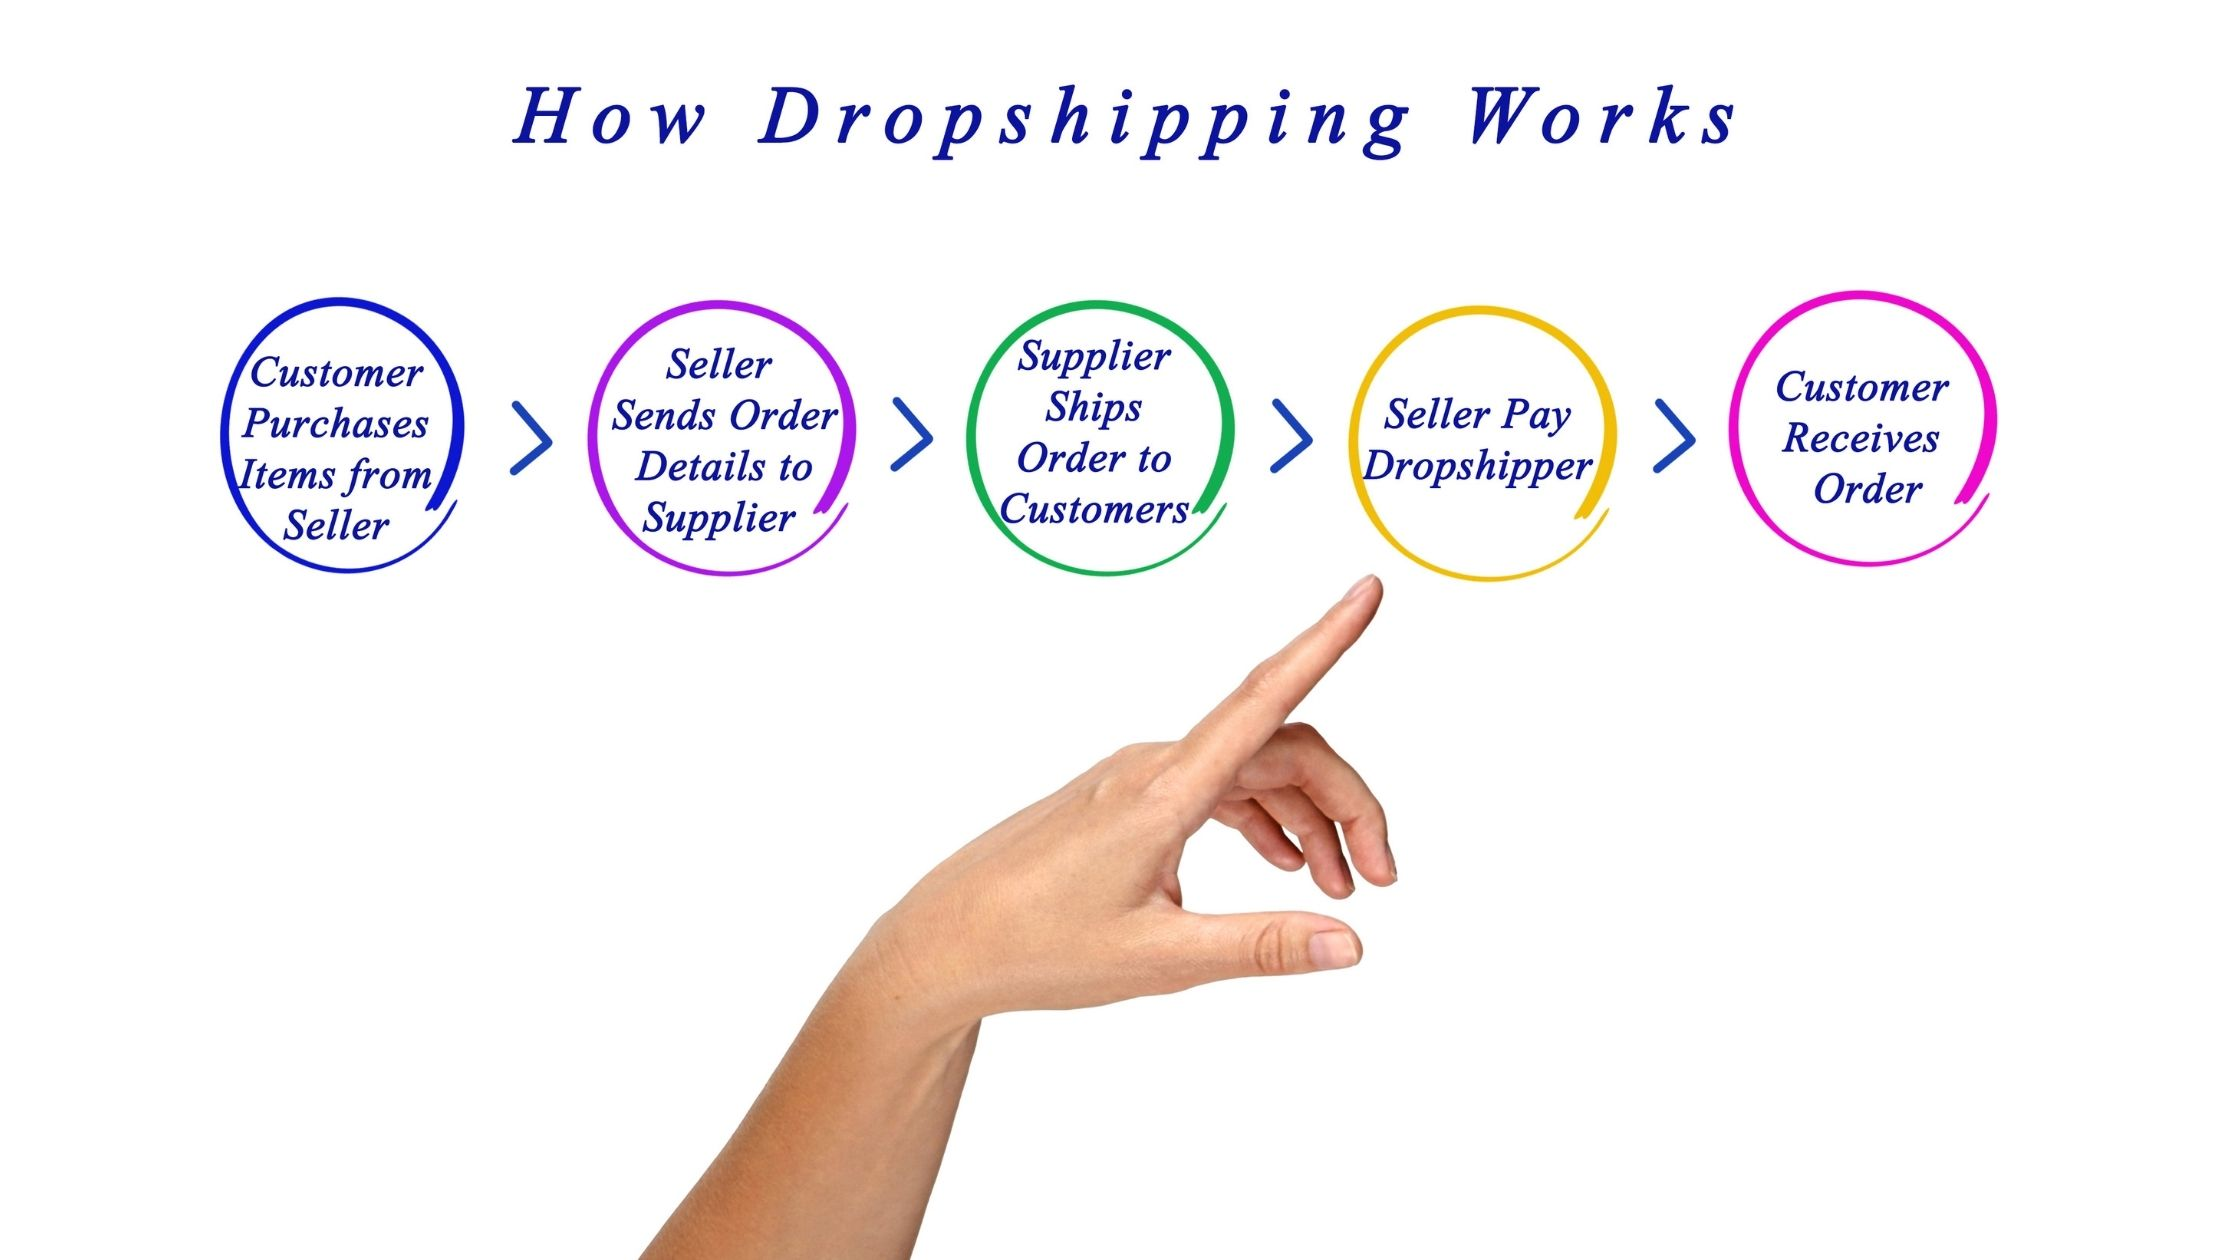 How dropsshiping works